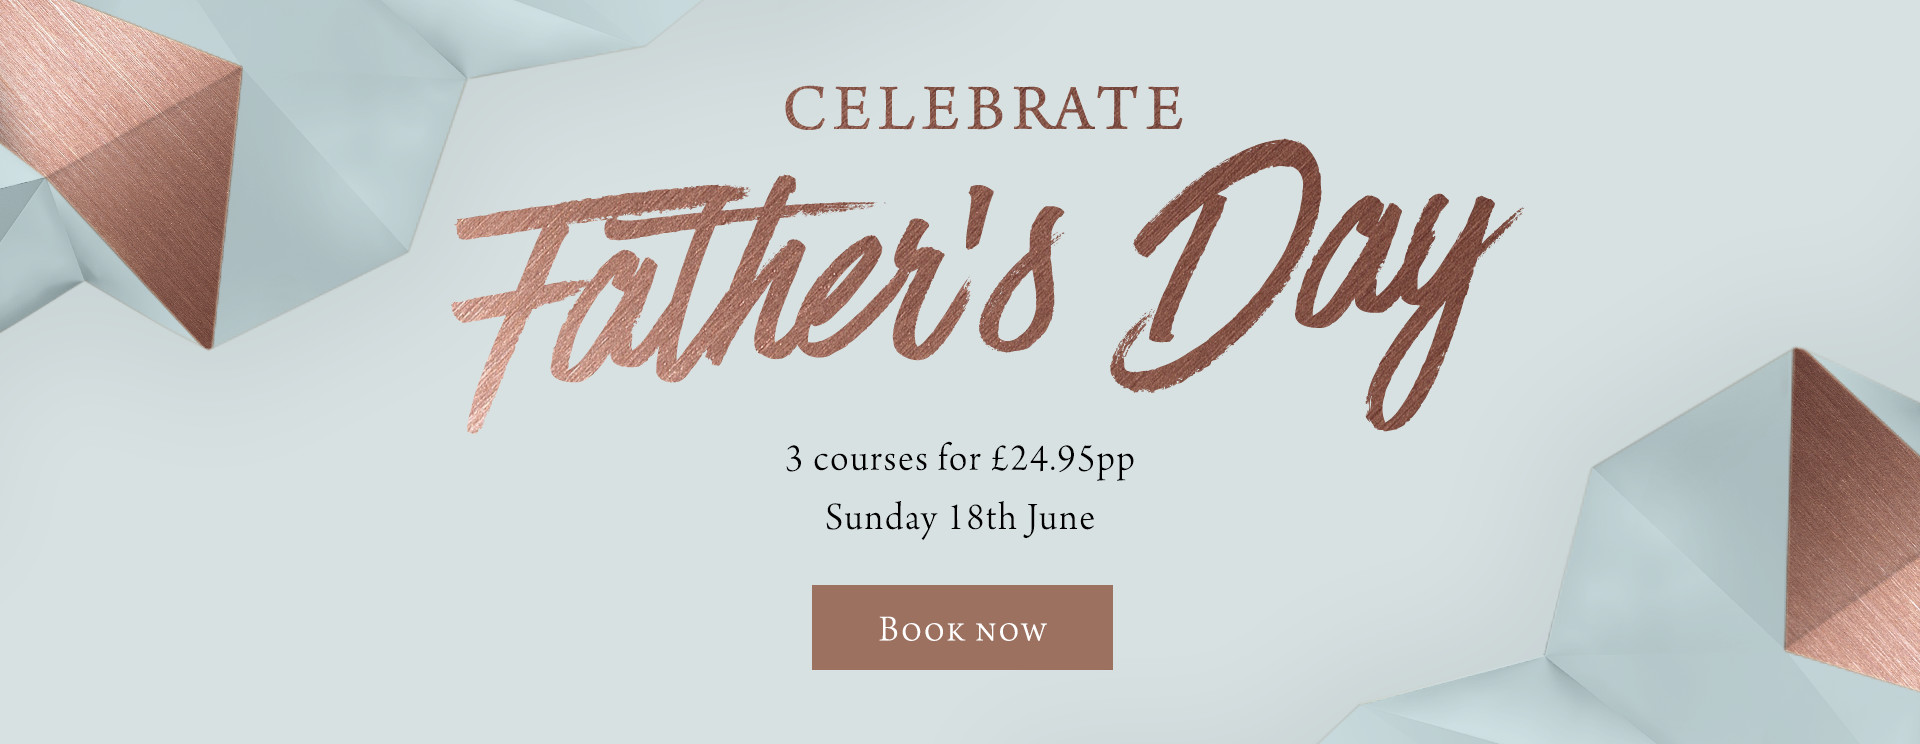 Father's Day at The White Hart - Book now